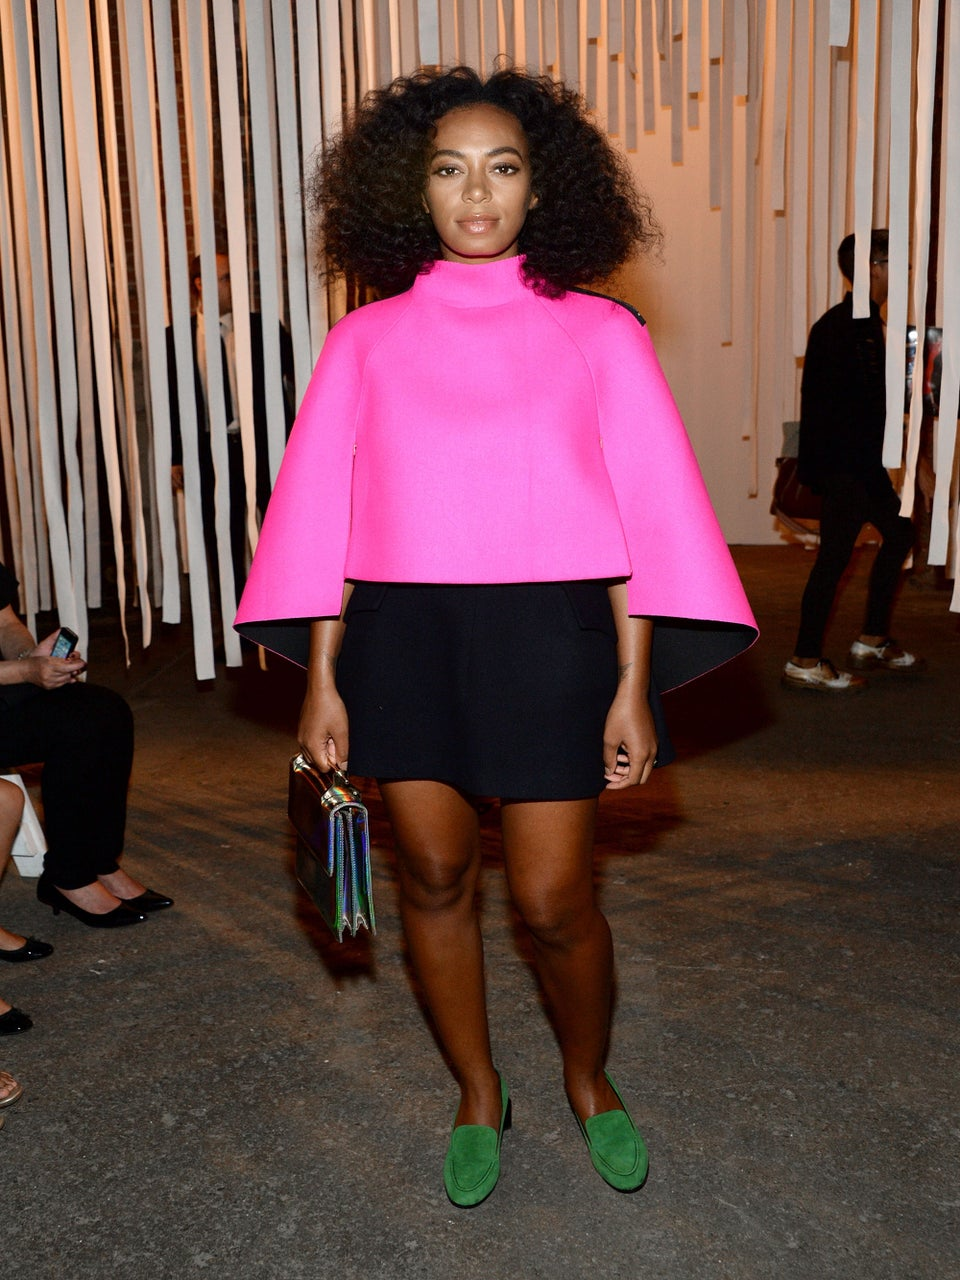 You'll Never Guess What R&B Singer Was Solange's Teenage Boo